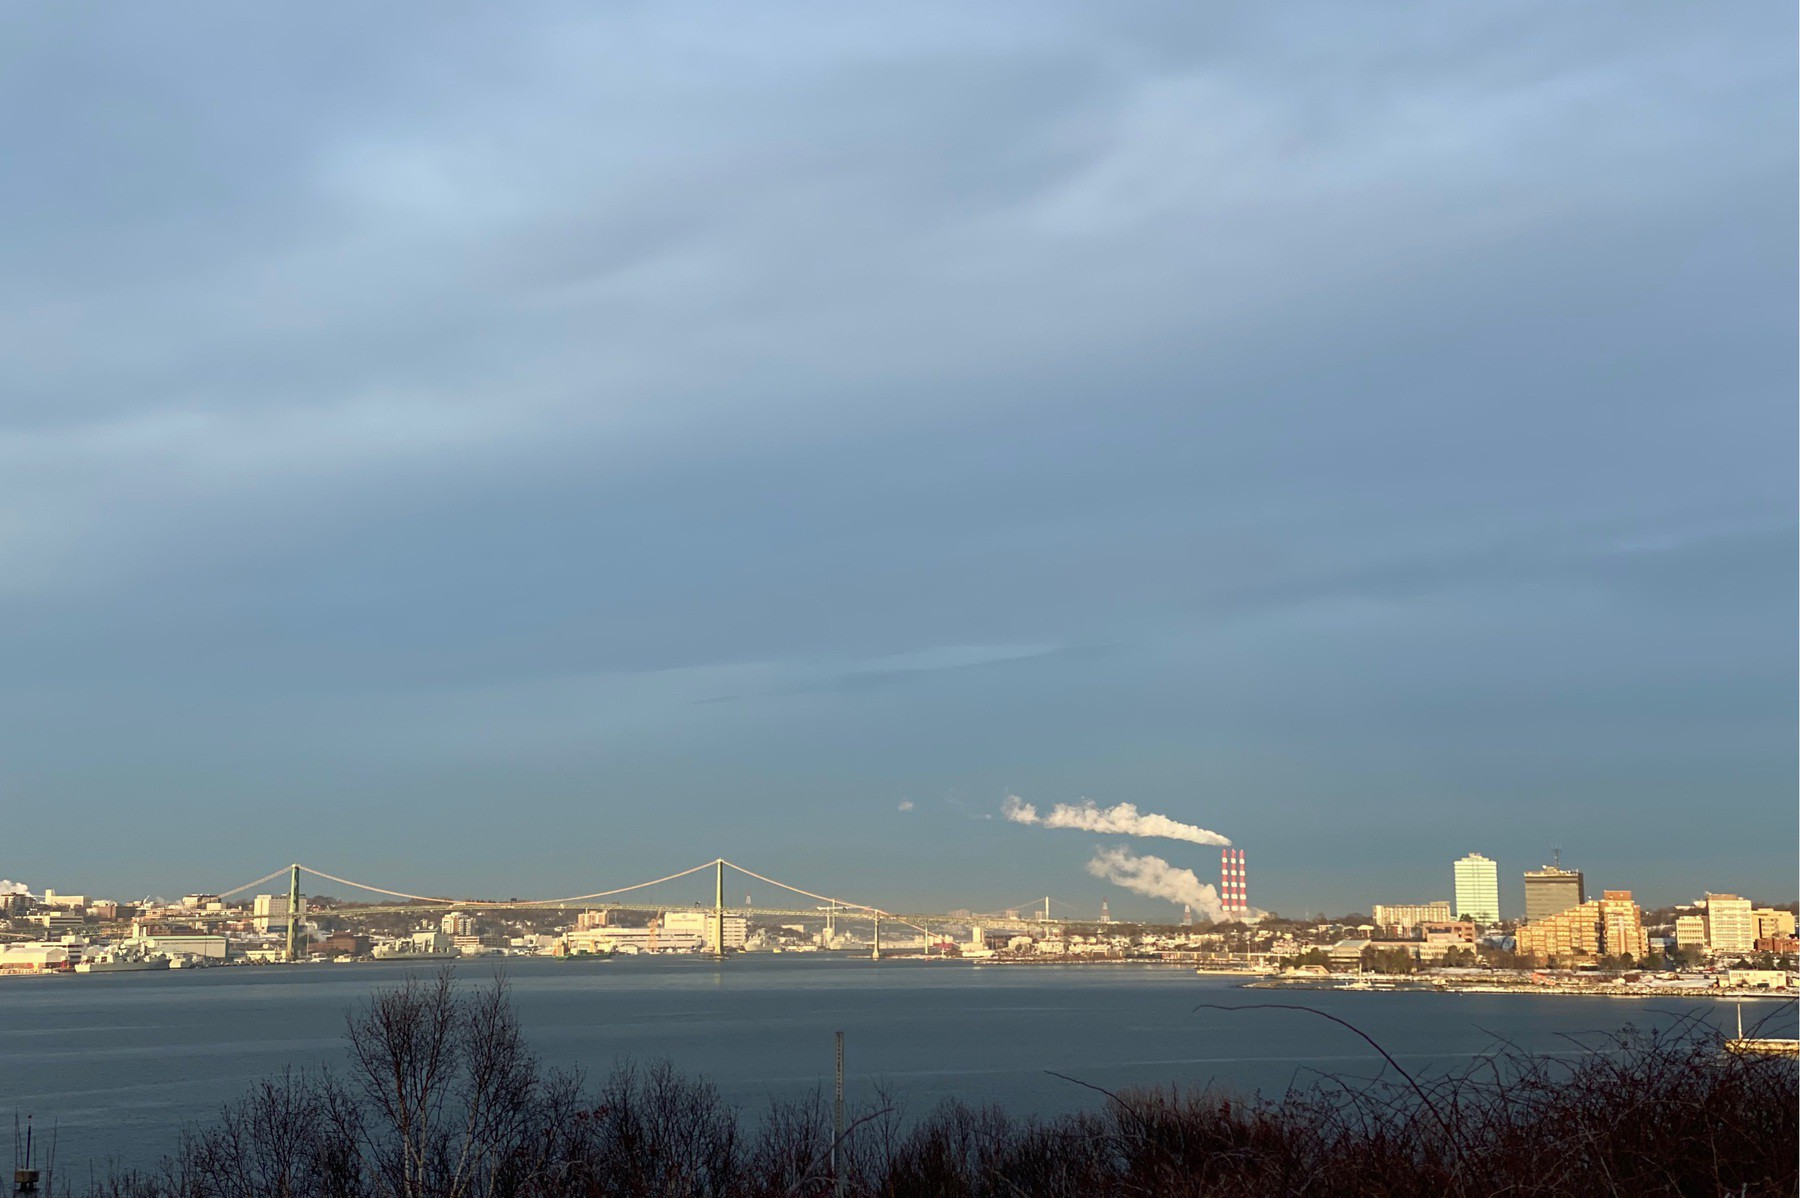 Clouds in sky over bridge and harbour.